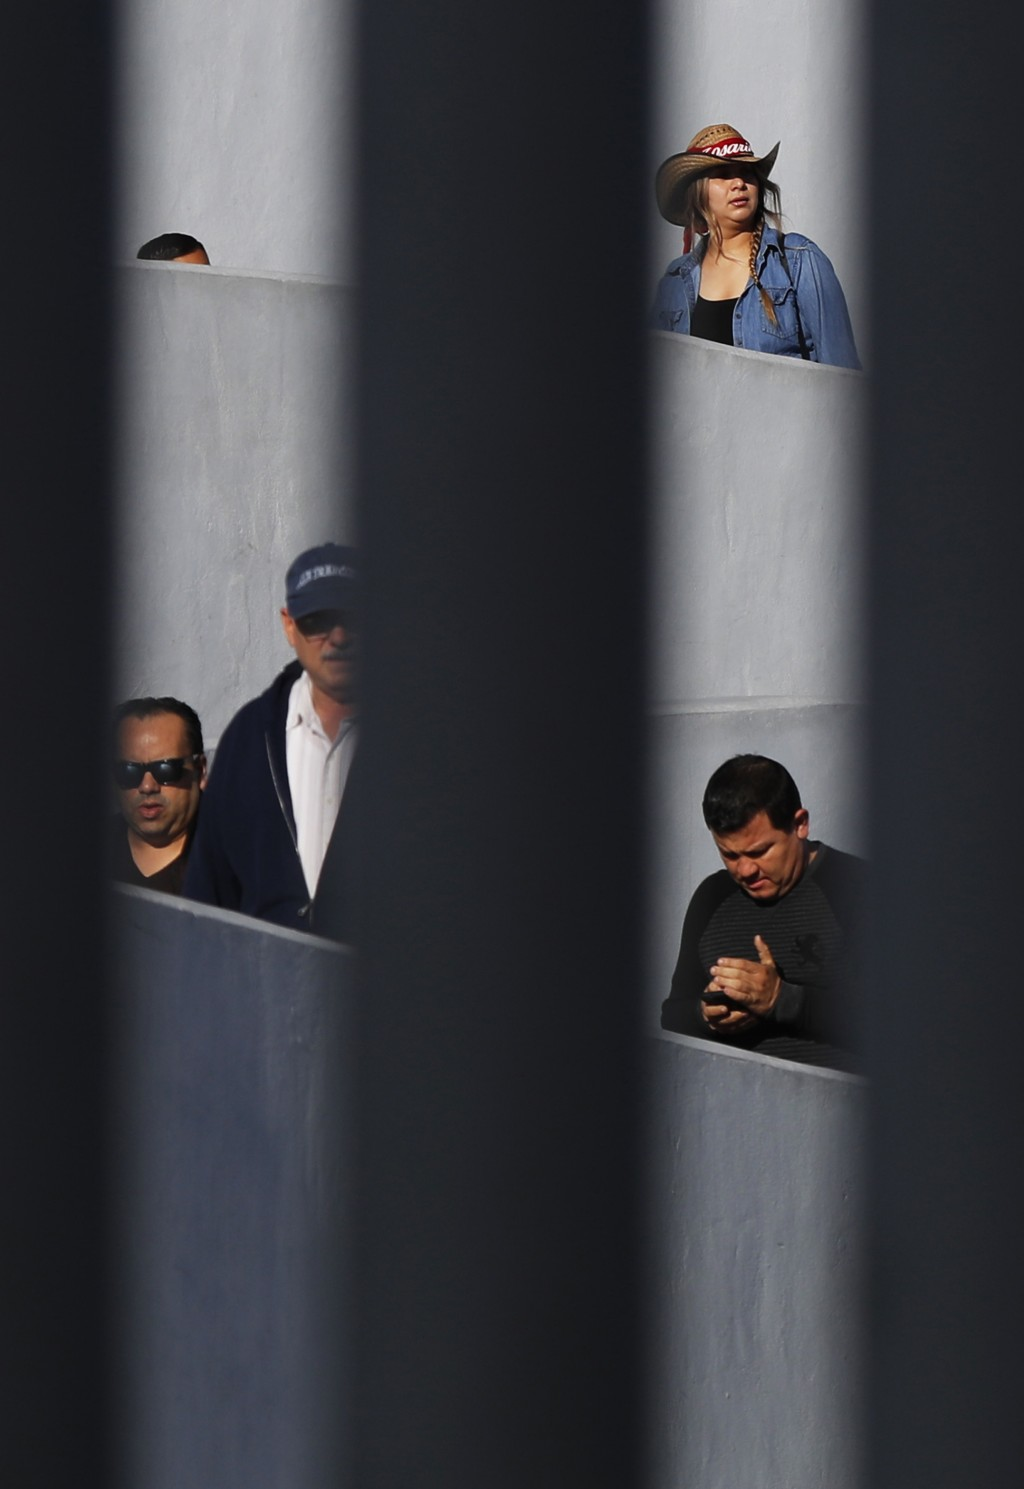 People use a legal border crossing to walk from Tijuana, Mexico to the U.S., Sunday, Nov. 18, 2018. While many in Tijuana are sympathetic to the pligh...